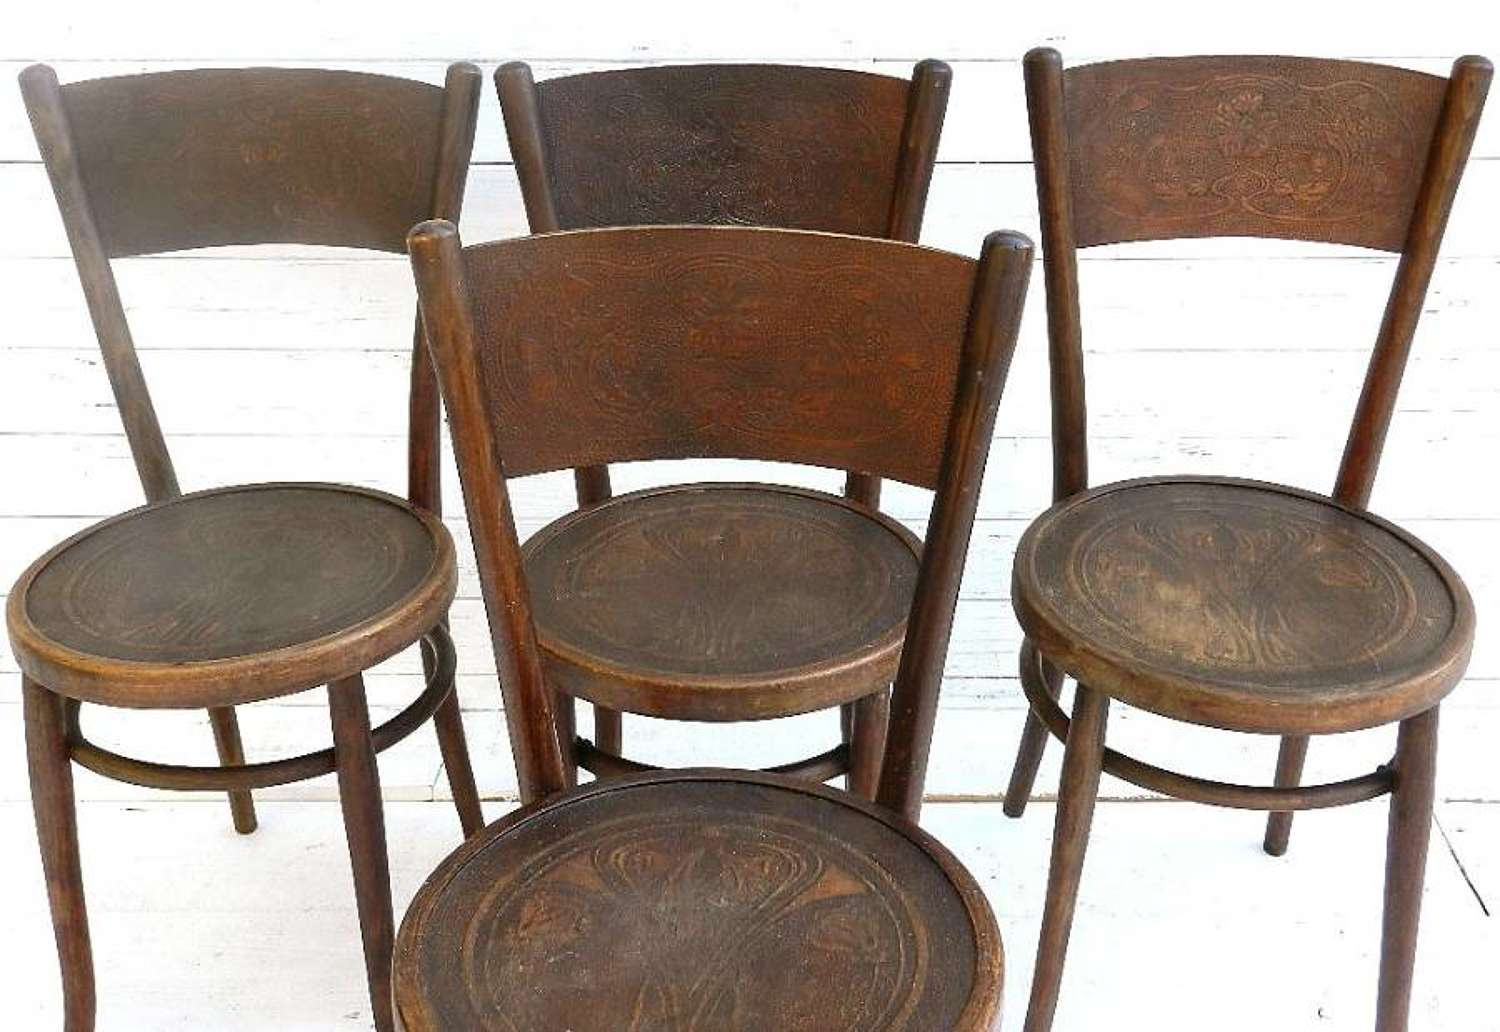 SET of 4 FRENCH ART NOUVEAU BENTWOOD CAFE CHAIRS